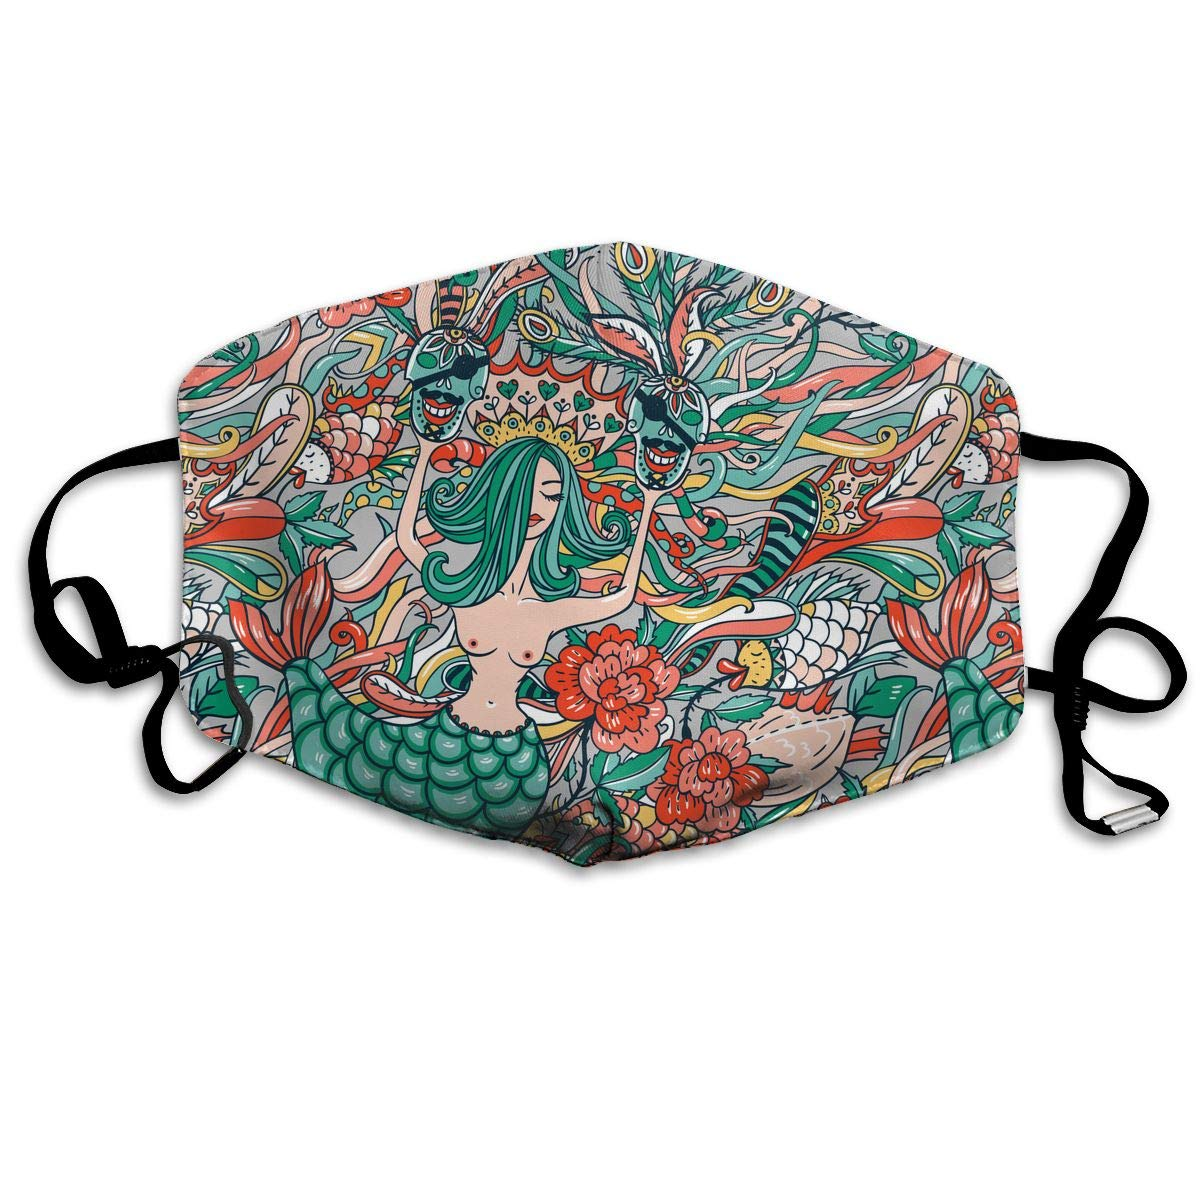 Beautiful Mermaid Washable Reusable   Mask, Cotton Anti Dust Half Face Mouth Mask For Kids Teens Men Women With Adjustable Ear